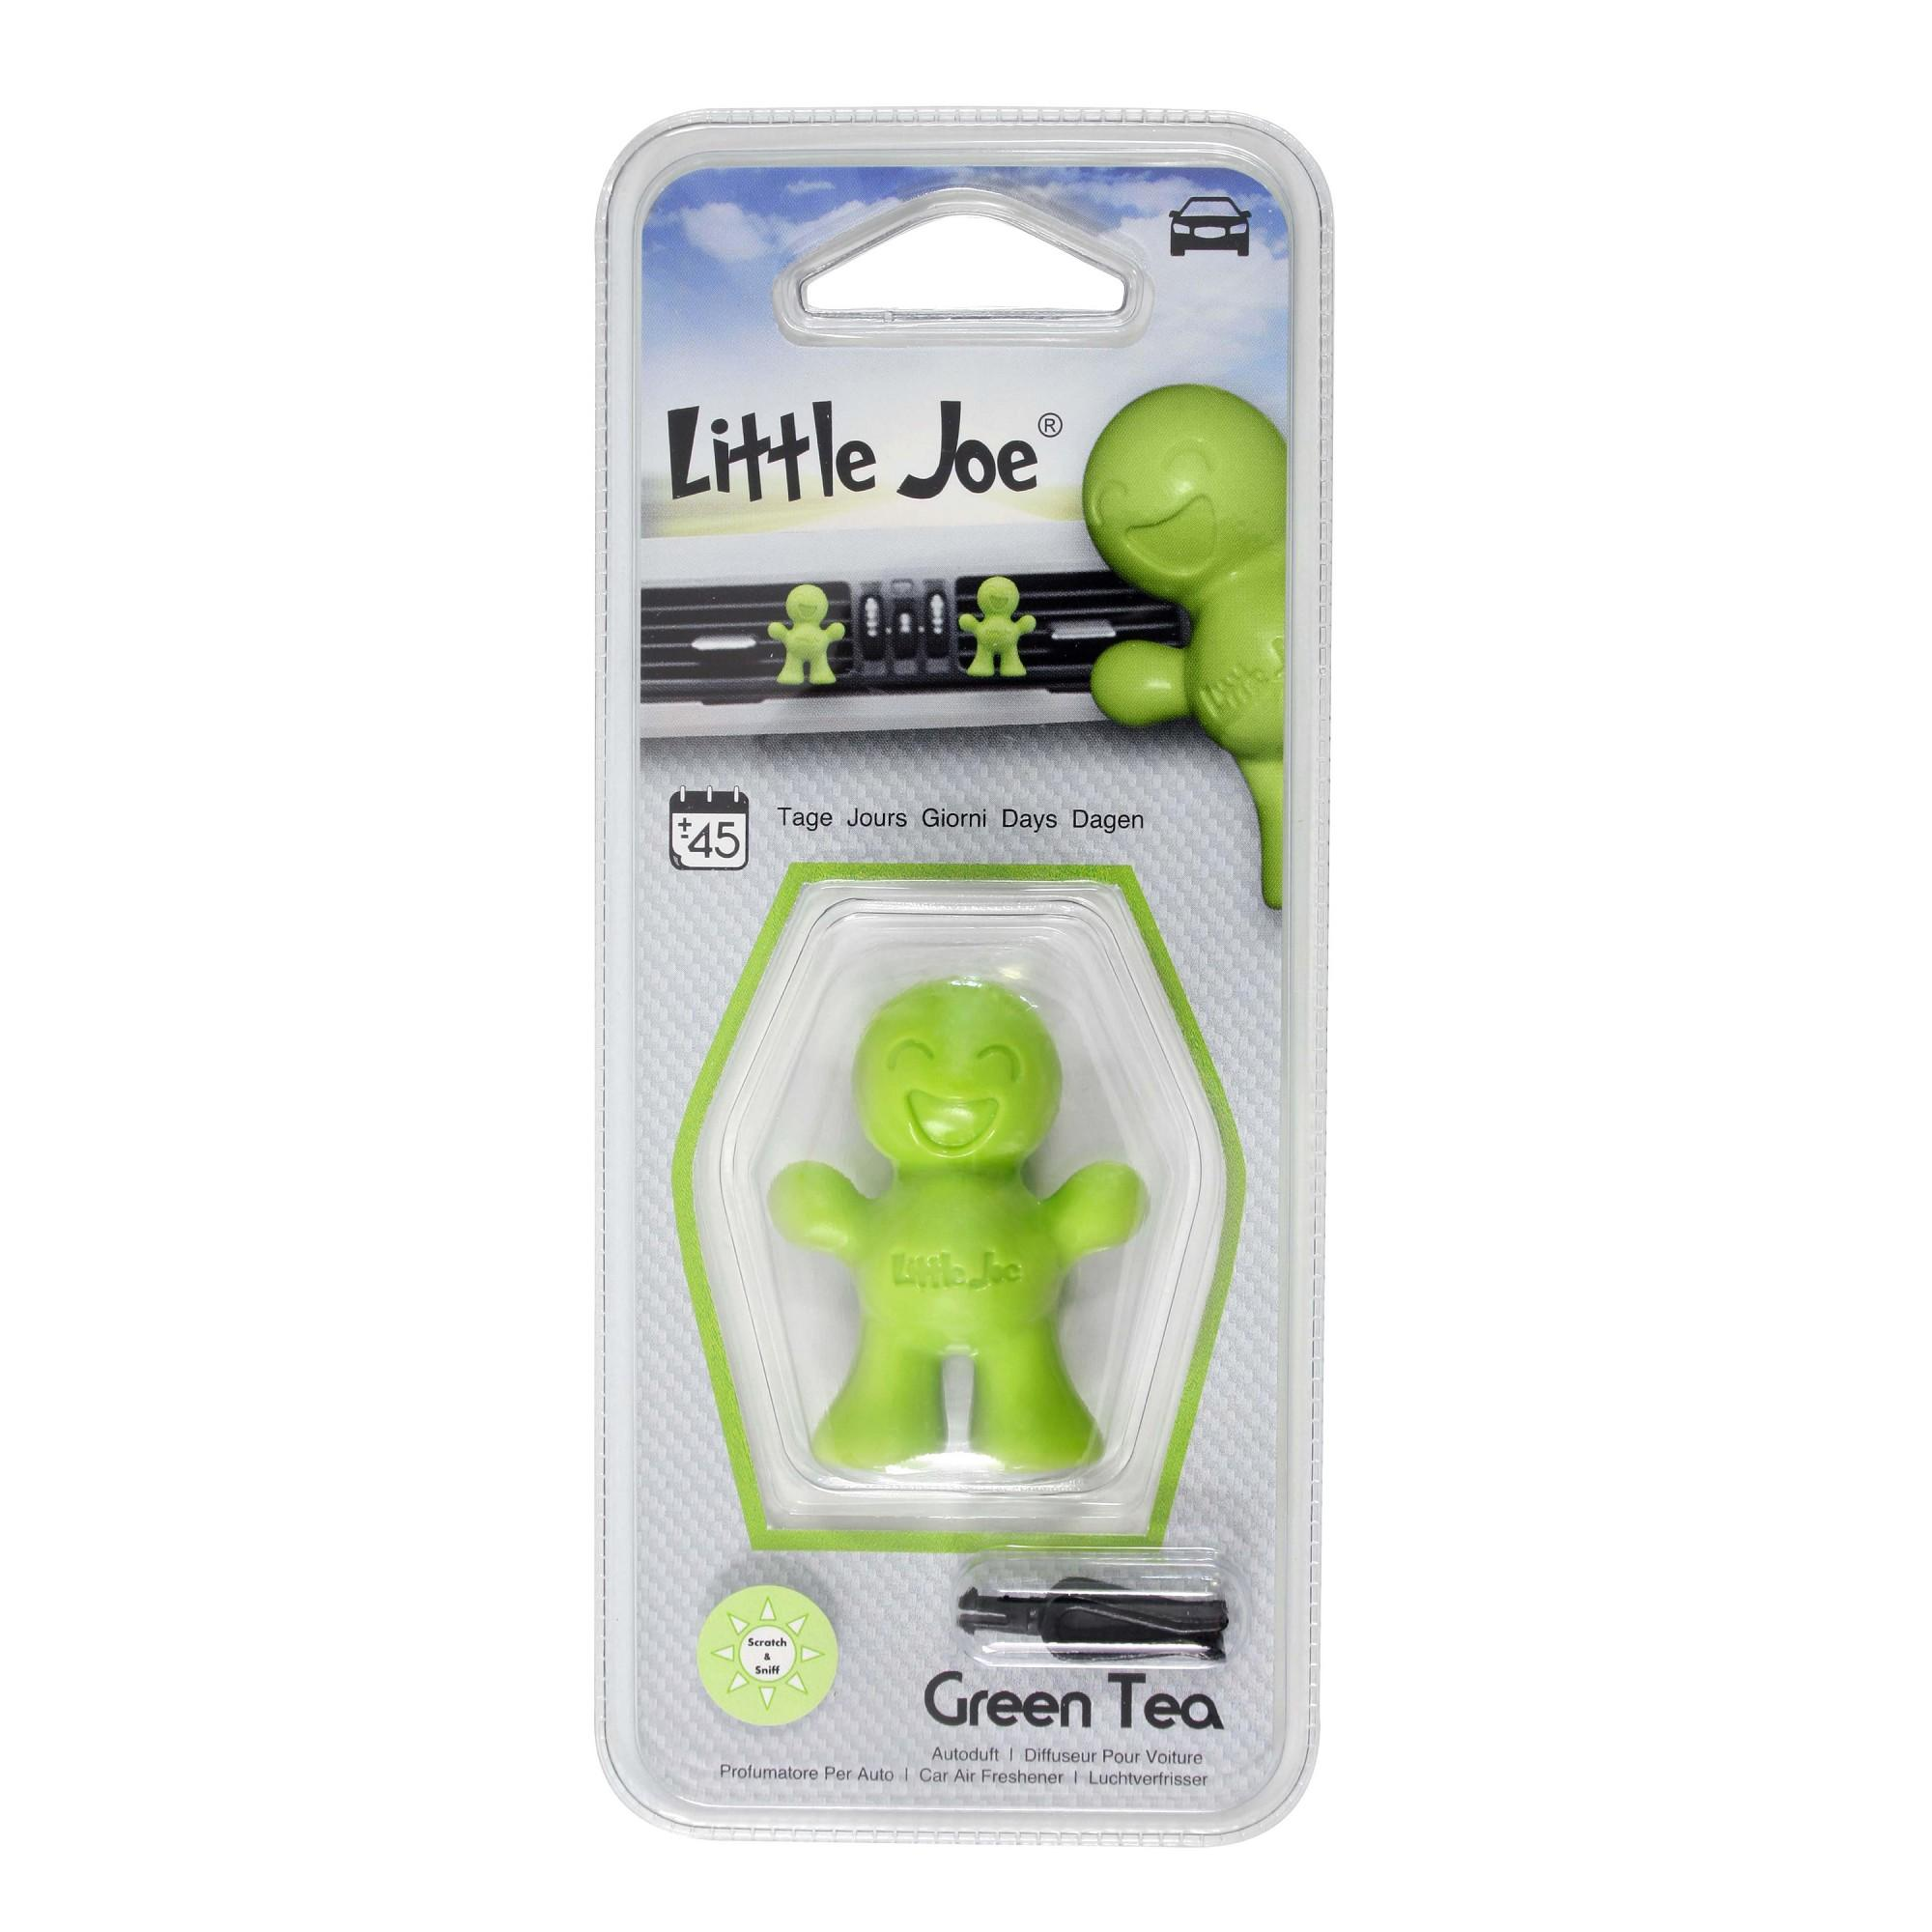 Little Joe GREEN TEA LJ004 Deodorant